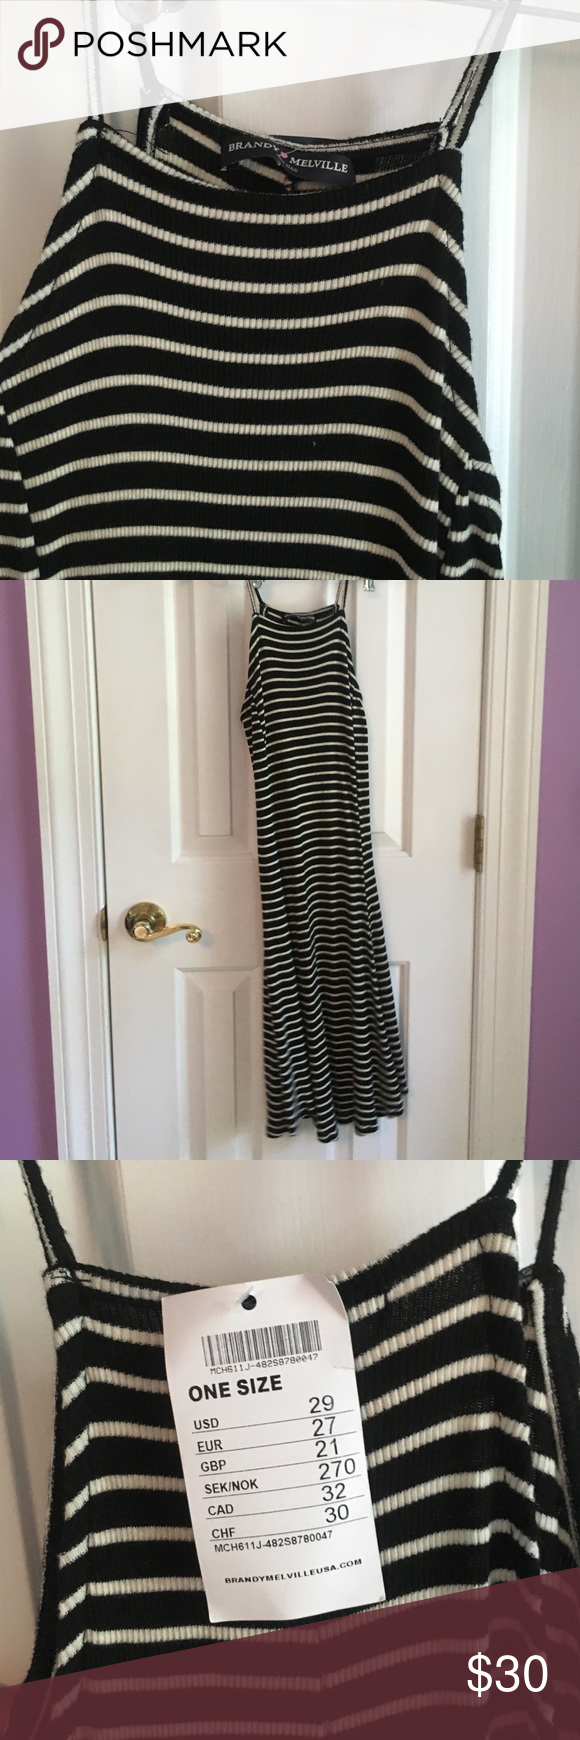 RARE Brandy Melville Striped Dress Never worn! No longer sold online or in stores. Depending on your height, hits around the knee/thigh area. Stretchy material could fit size XS, S, or M Brandy Melville Dresses